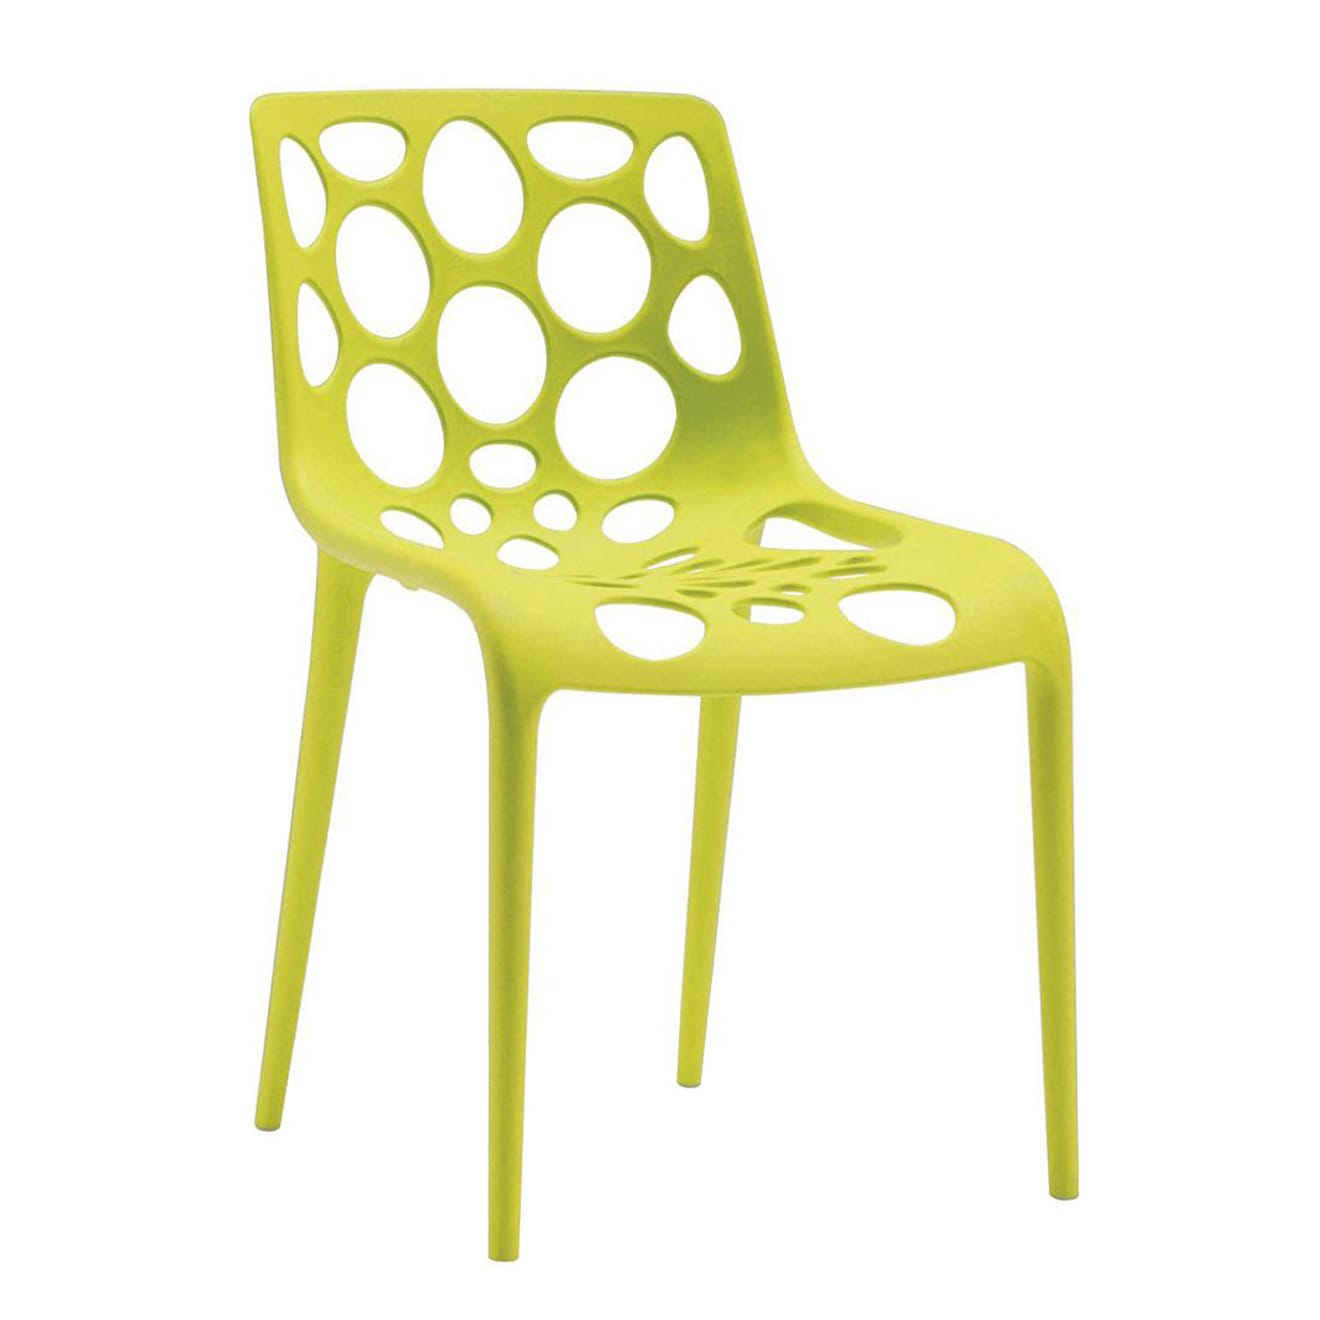 Hero Chair by Calligaris